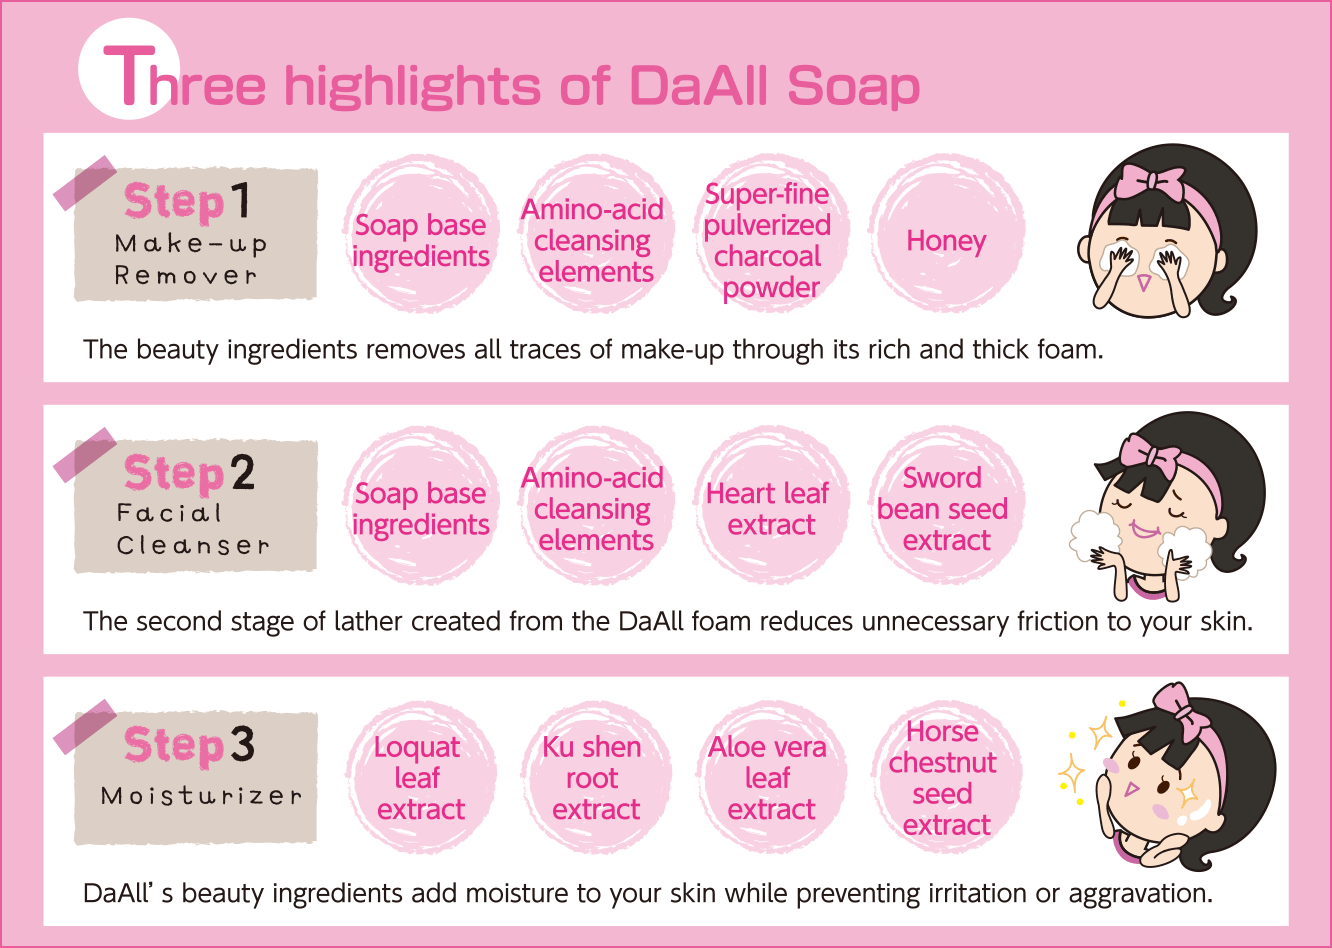 Three highlights of DaAll Soap